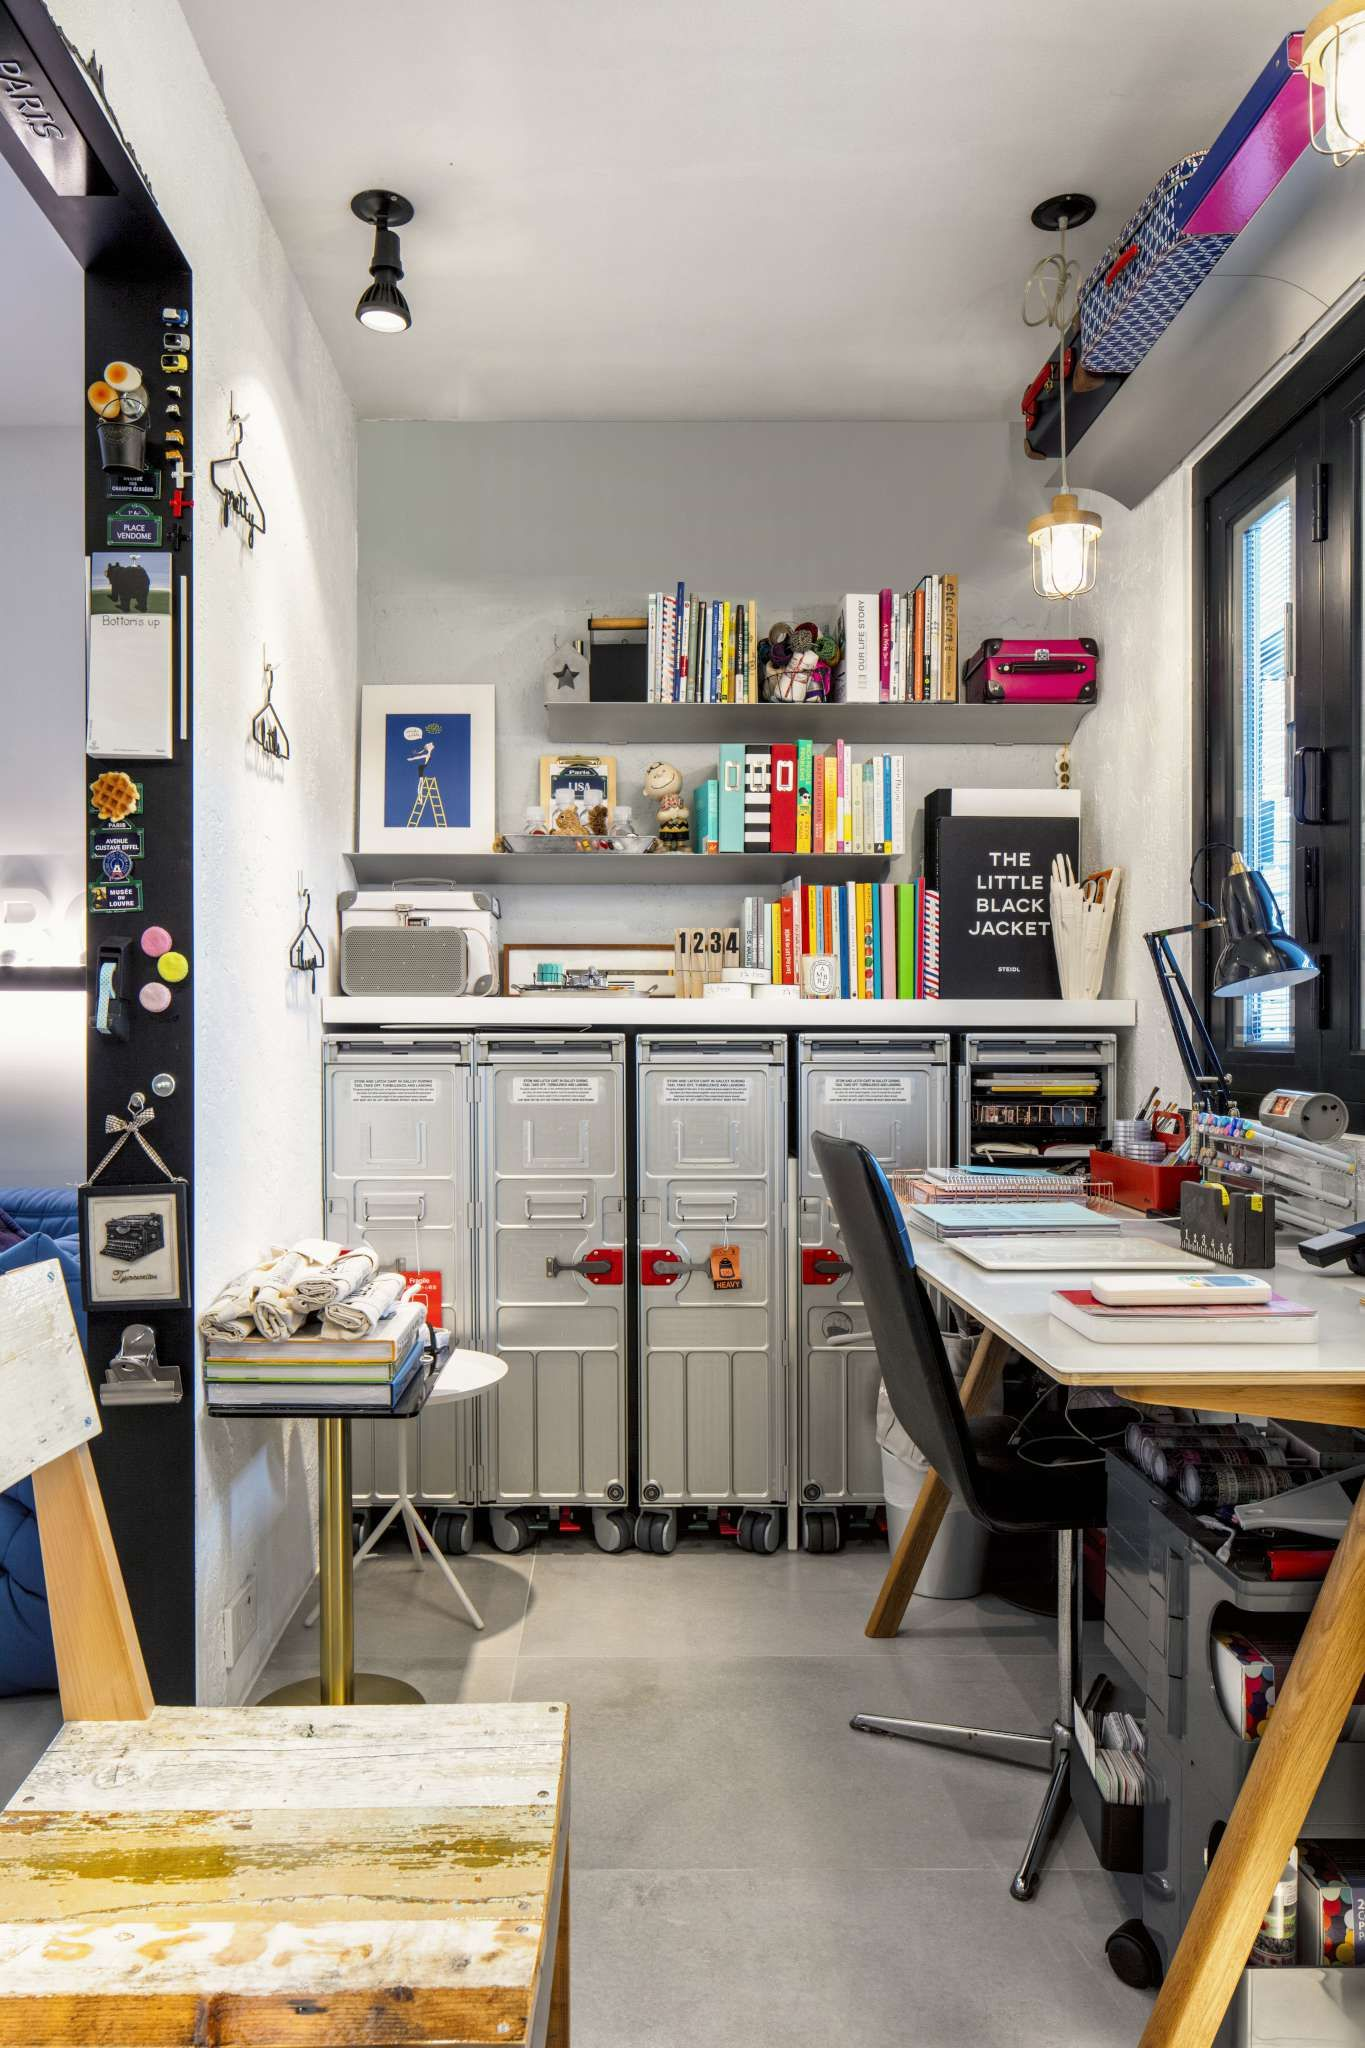 Find This Pin And More On Home Office Ideas By